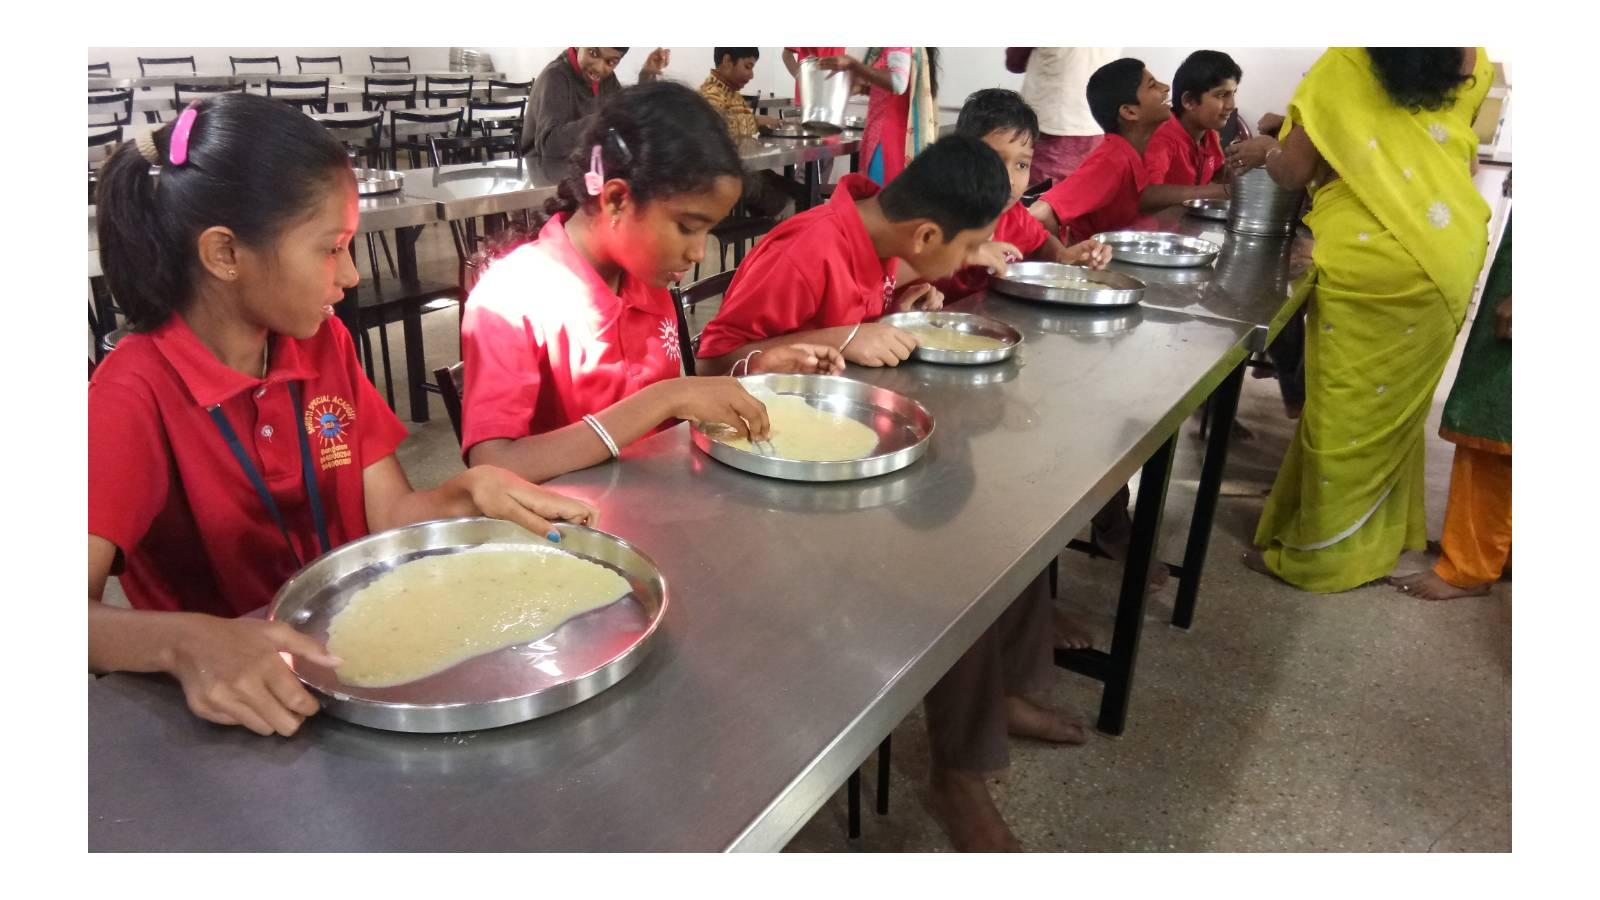 Shrist Special Academy, The students are of developmentally delay, austic, down's syndrome, ADHD and psychomotor retardation. Shristi provides them with special needs from the ages of infancy to adulthood. Maria Seva Sangha provides mid-day meal to these children on each working day.